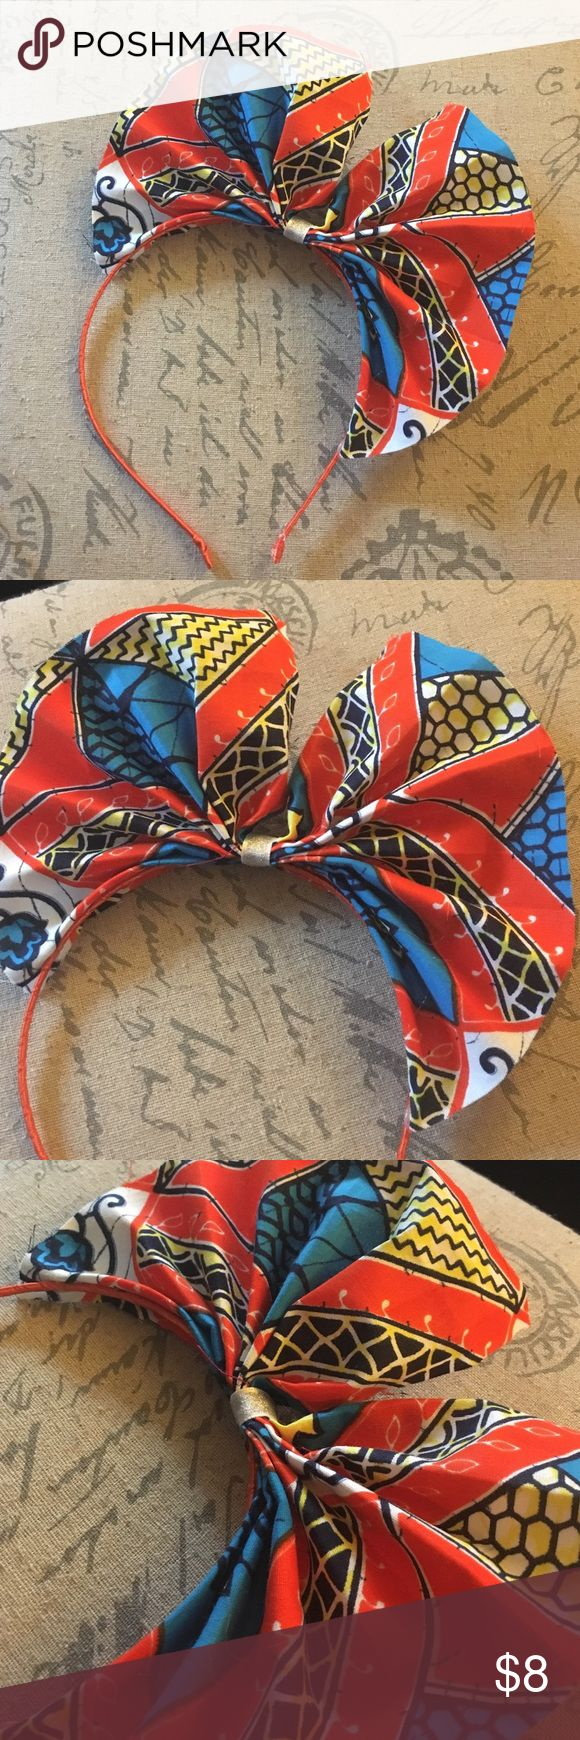 African print headband Ankara African print handmade headband. Orange, blue and white vibrant beautiful print. Accessories Hair Accessories